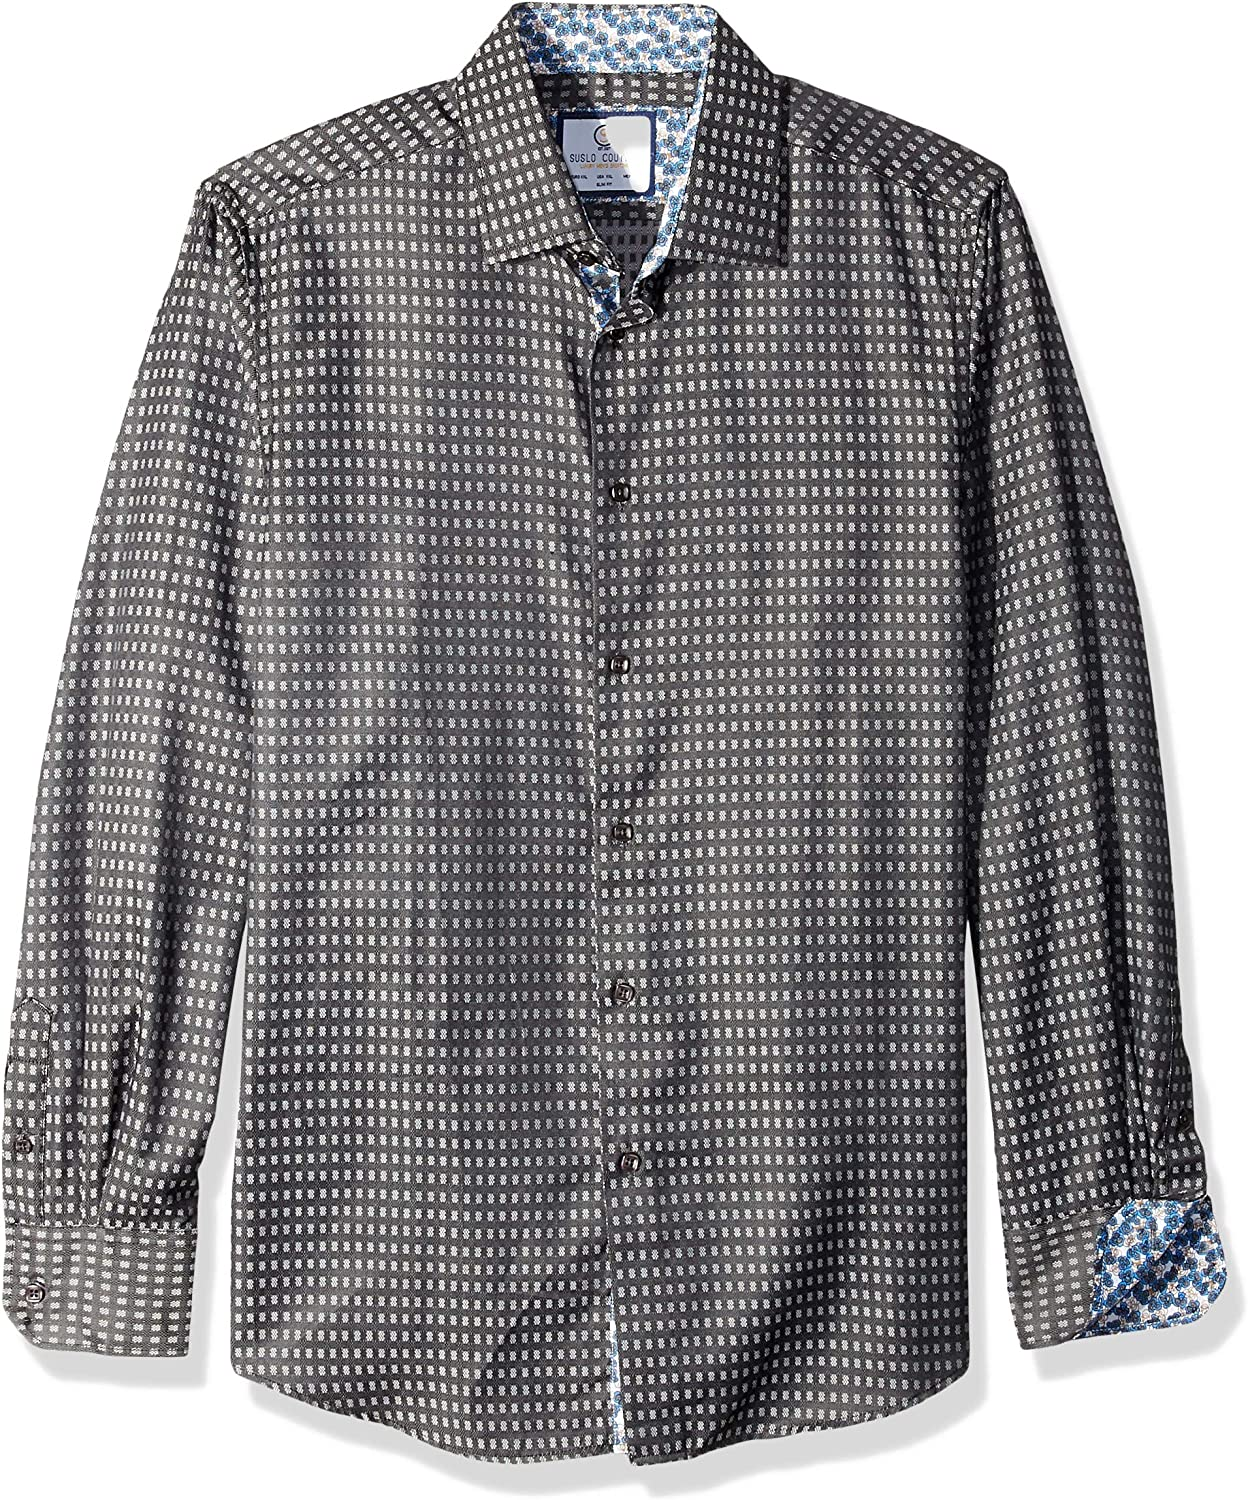 Azaro Uomo Men's Dress Shirt Casual Button Down Long Or 3/4 Sleeve Fitted